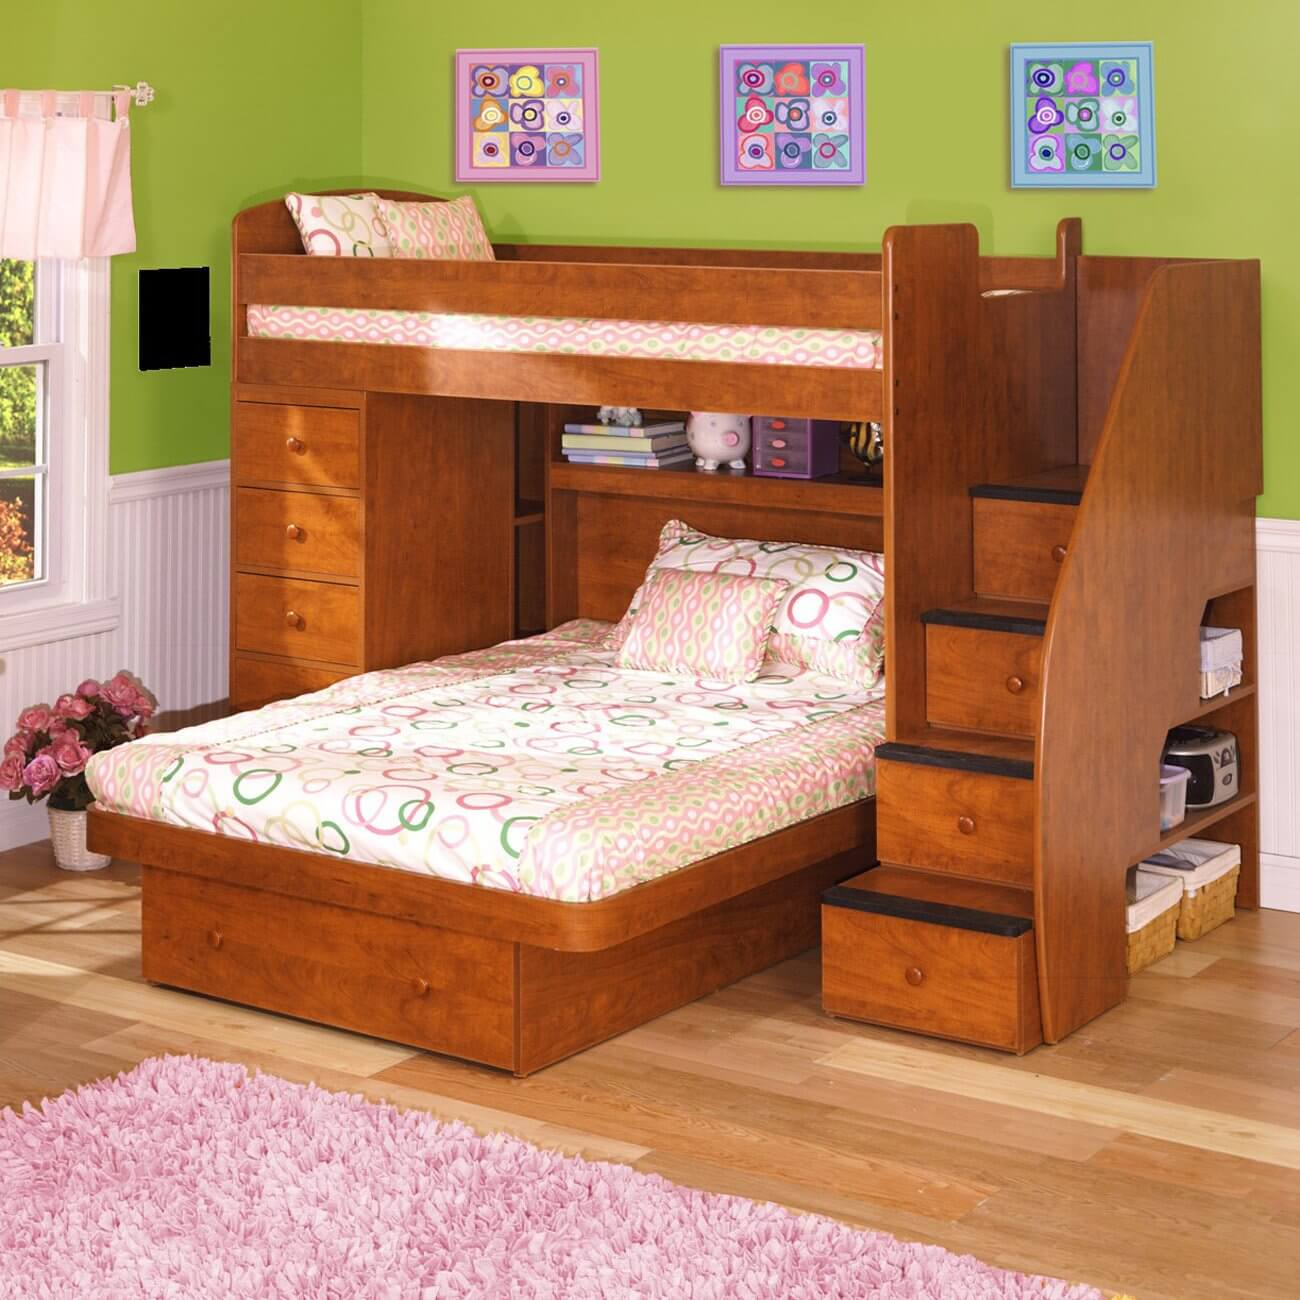 Bunk bed with stairs and storage - Bunk Bed With Stairs And Storage 23